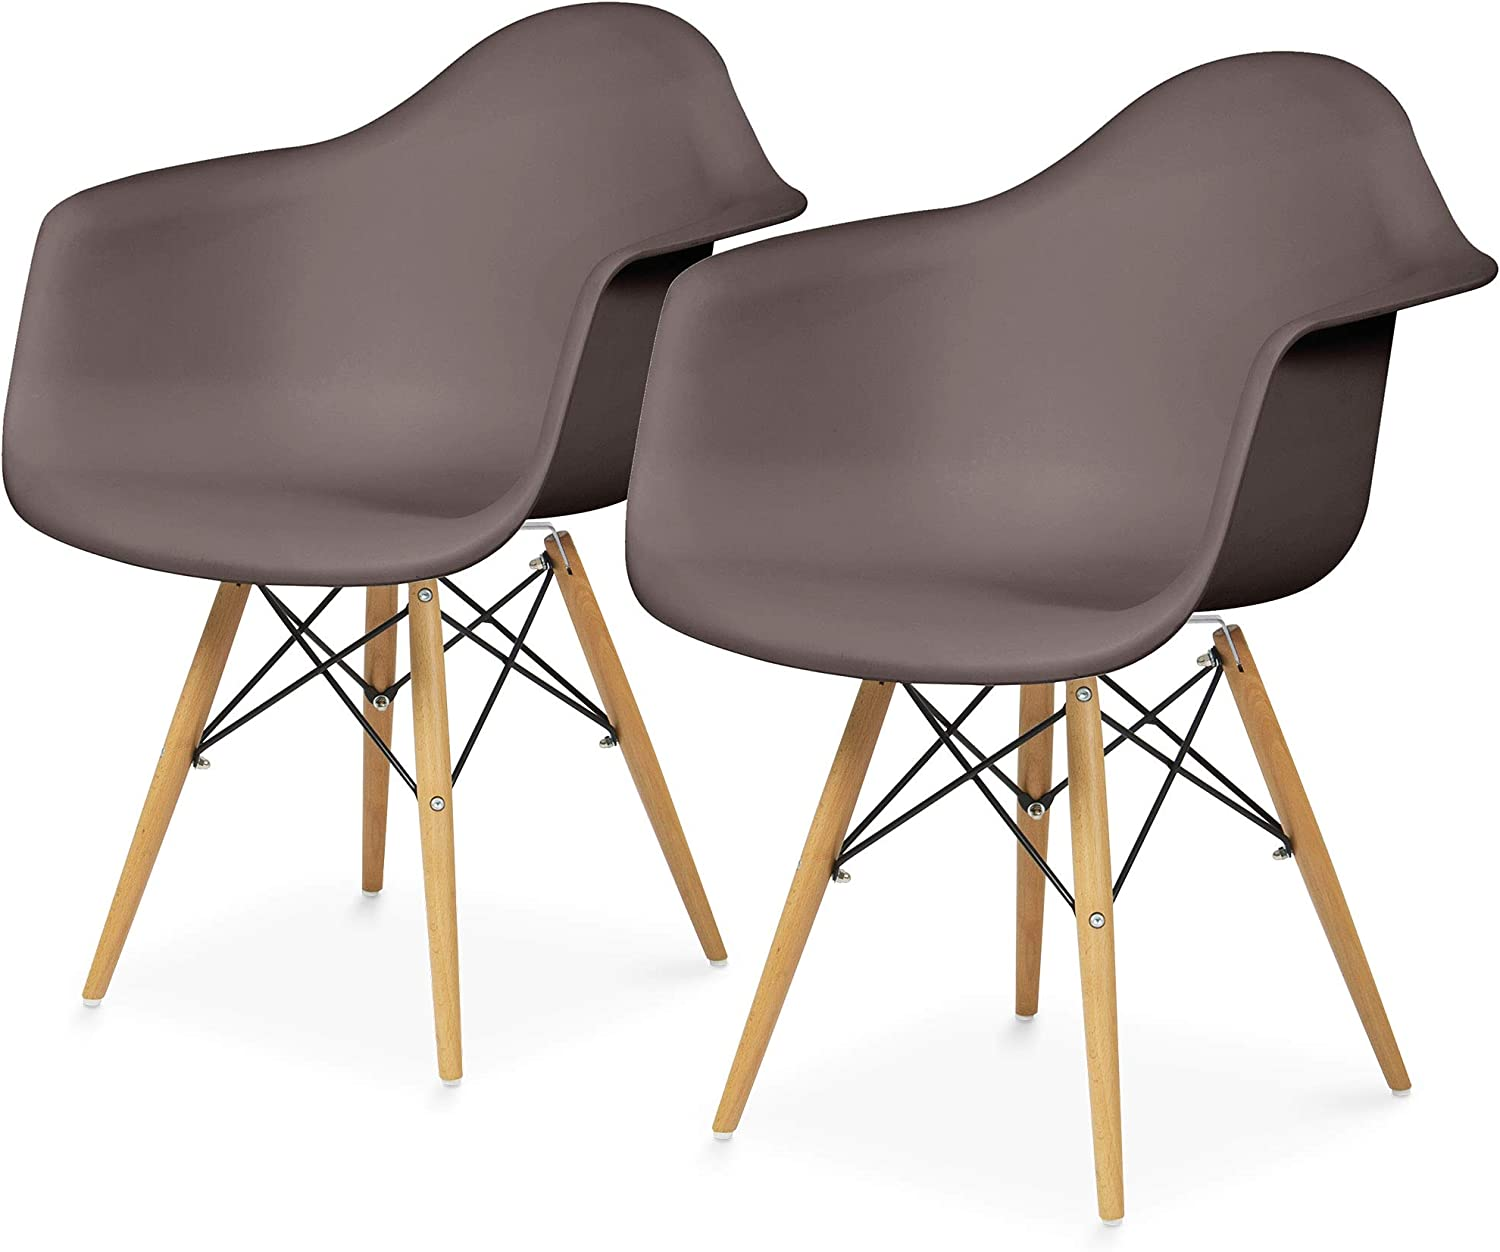 Best Choice Products Mid-Century Modern Eames Style Accent Arm Chairs for Dining, Office, Living Room, Set of 2, Taupe